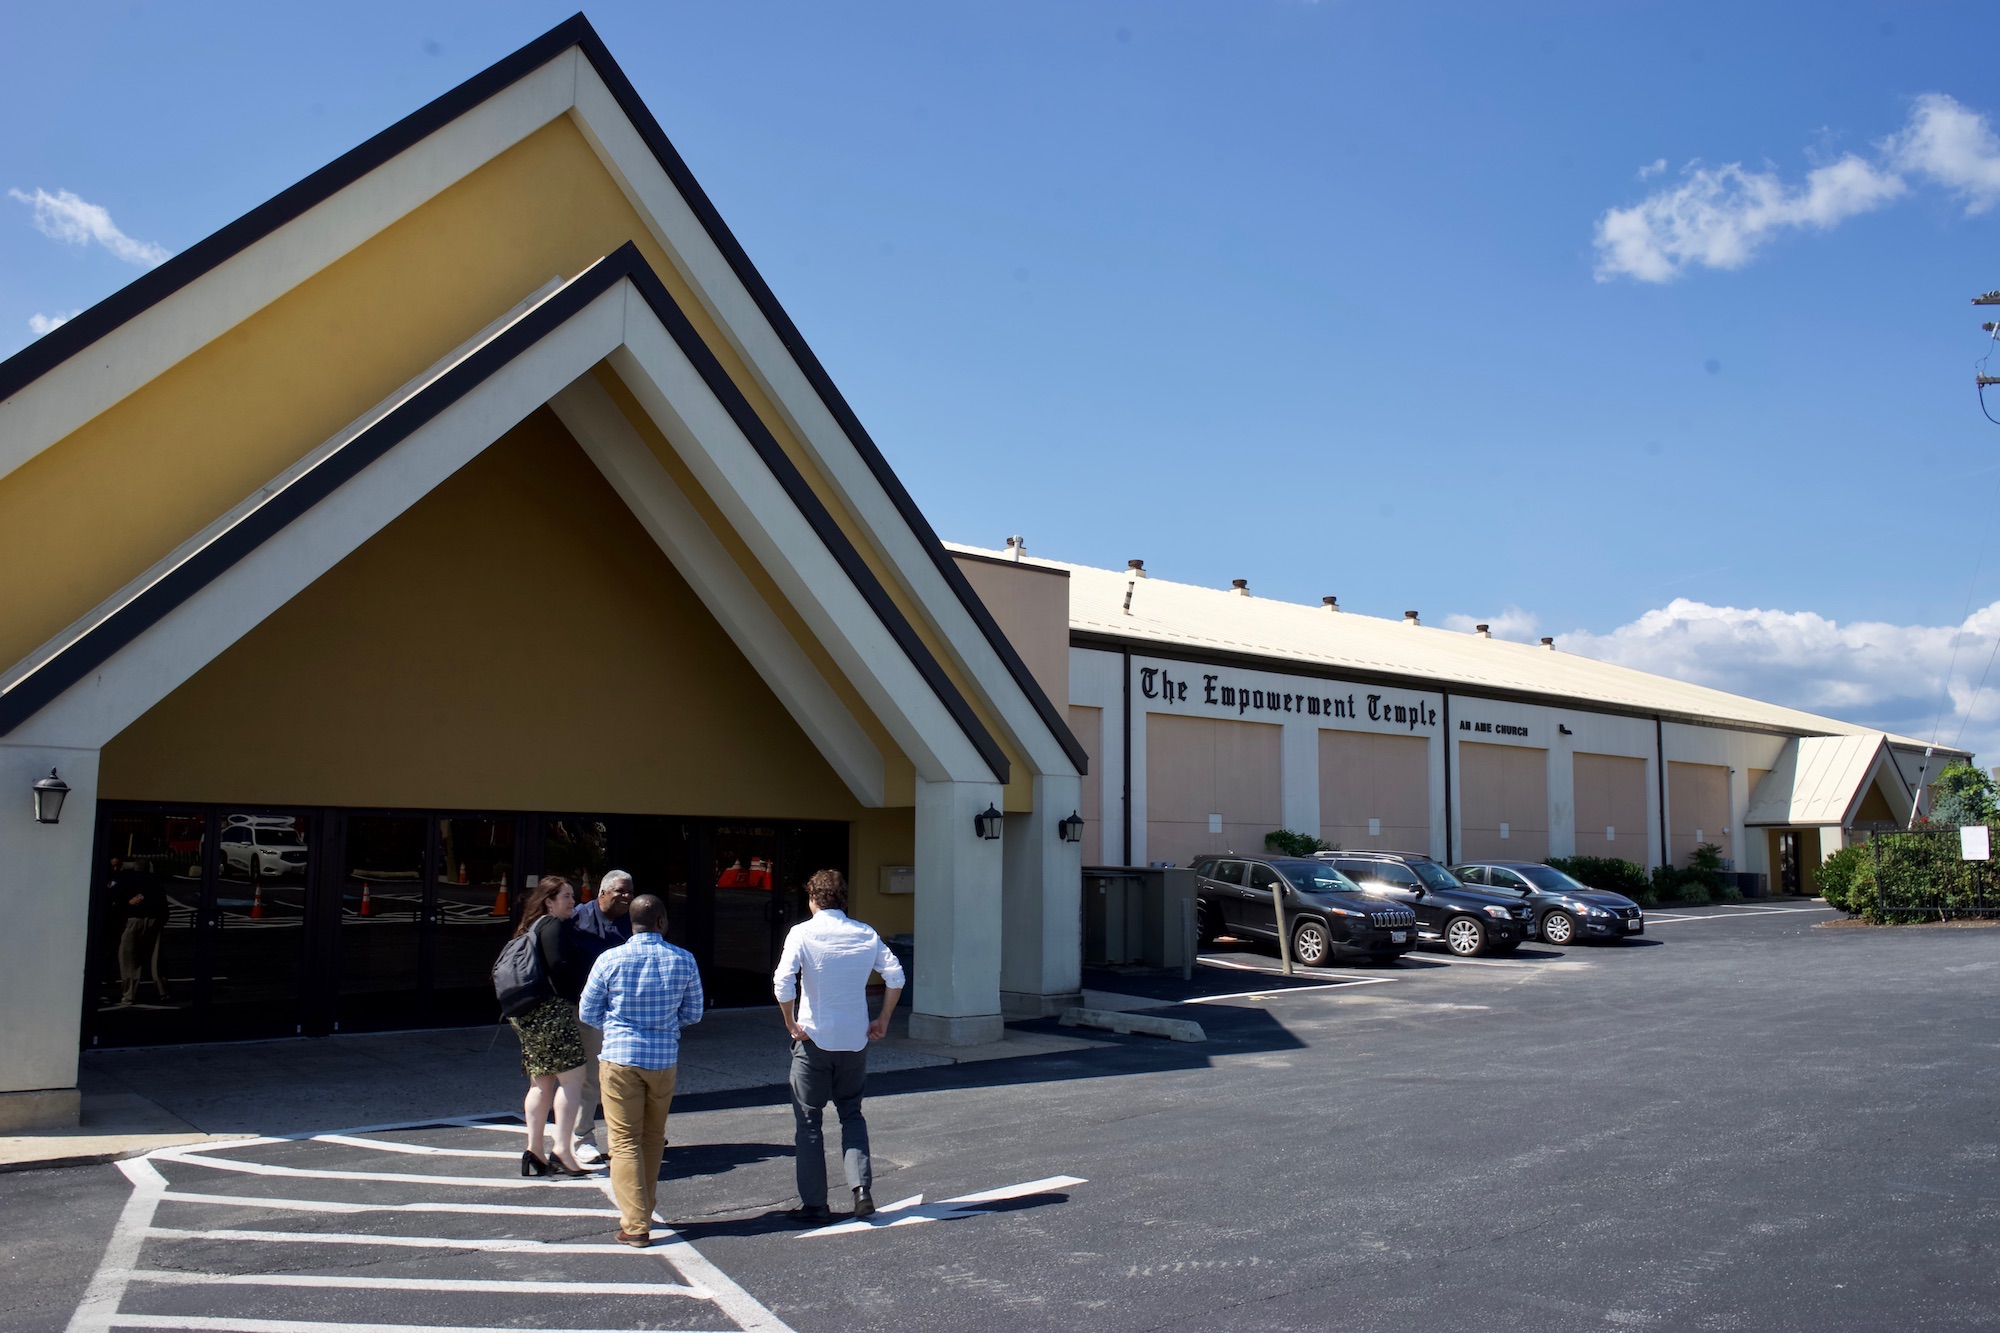 A large angled arch of a building in front of a large parking lot. On the body of the building it reads